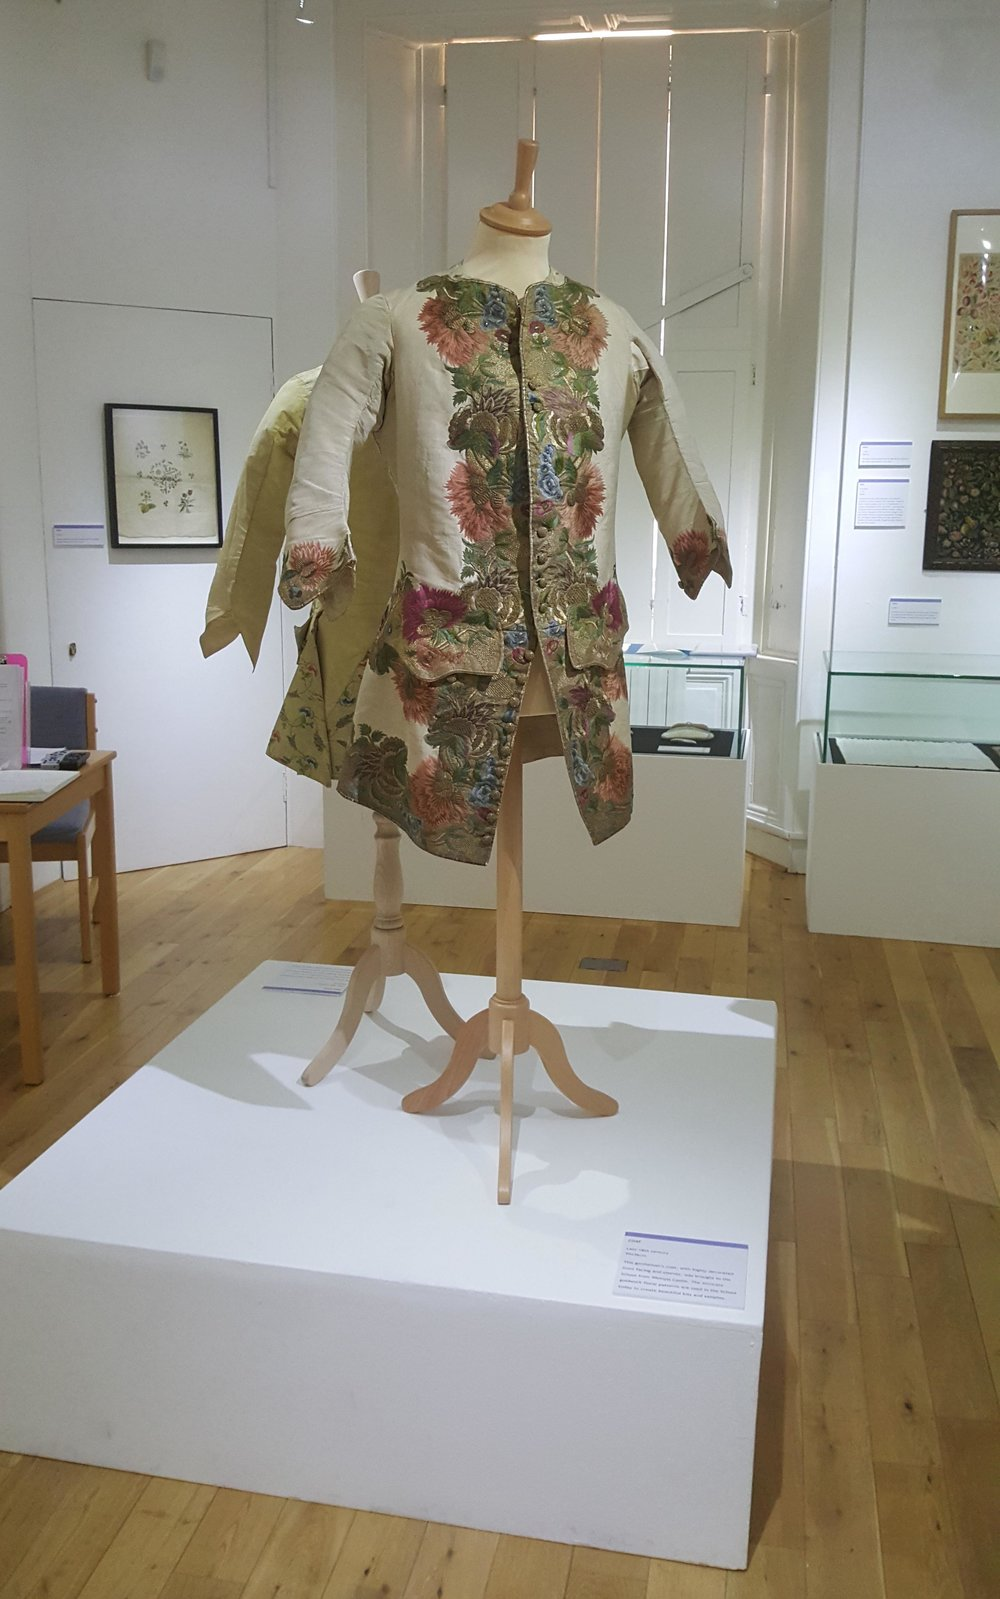 Beautiful embroidered 18th century gentleman's coat from the Wemyss Needlework School collection.